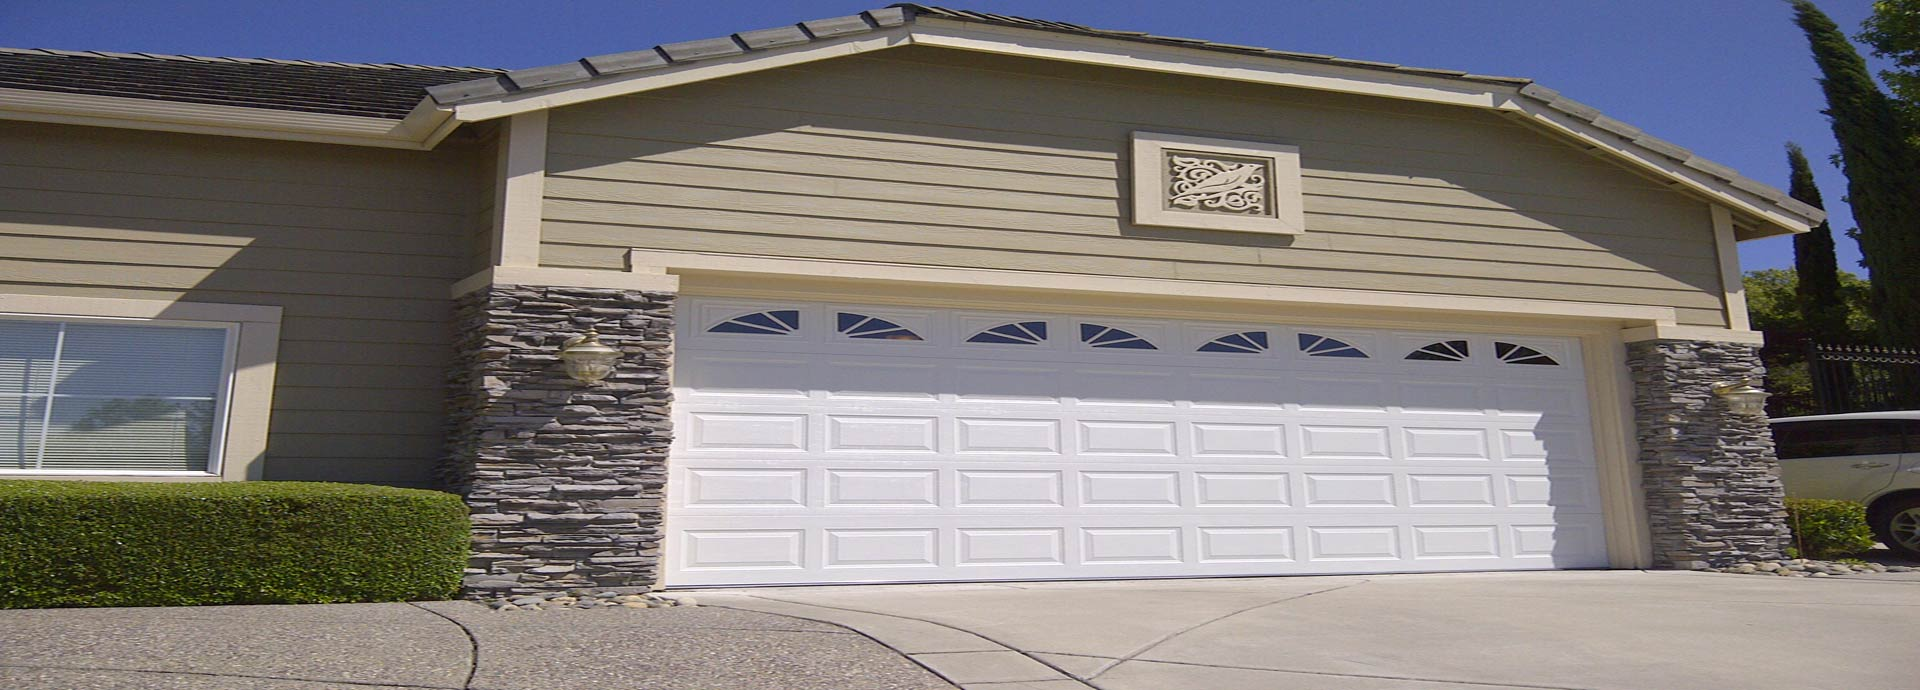 Garage Door Repair Glendale #37 - Garage Door Repair Glendale